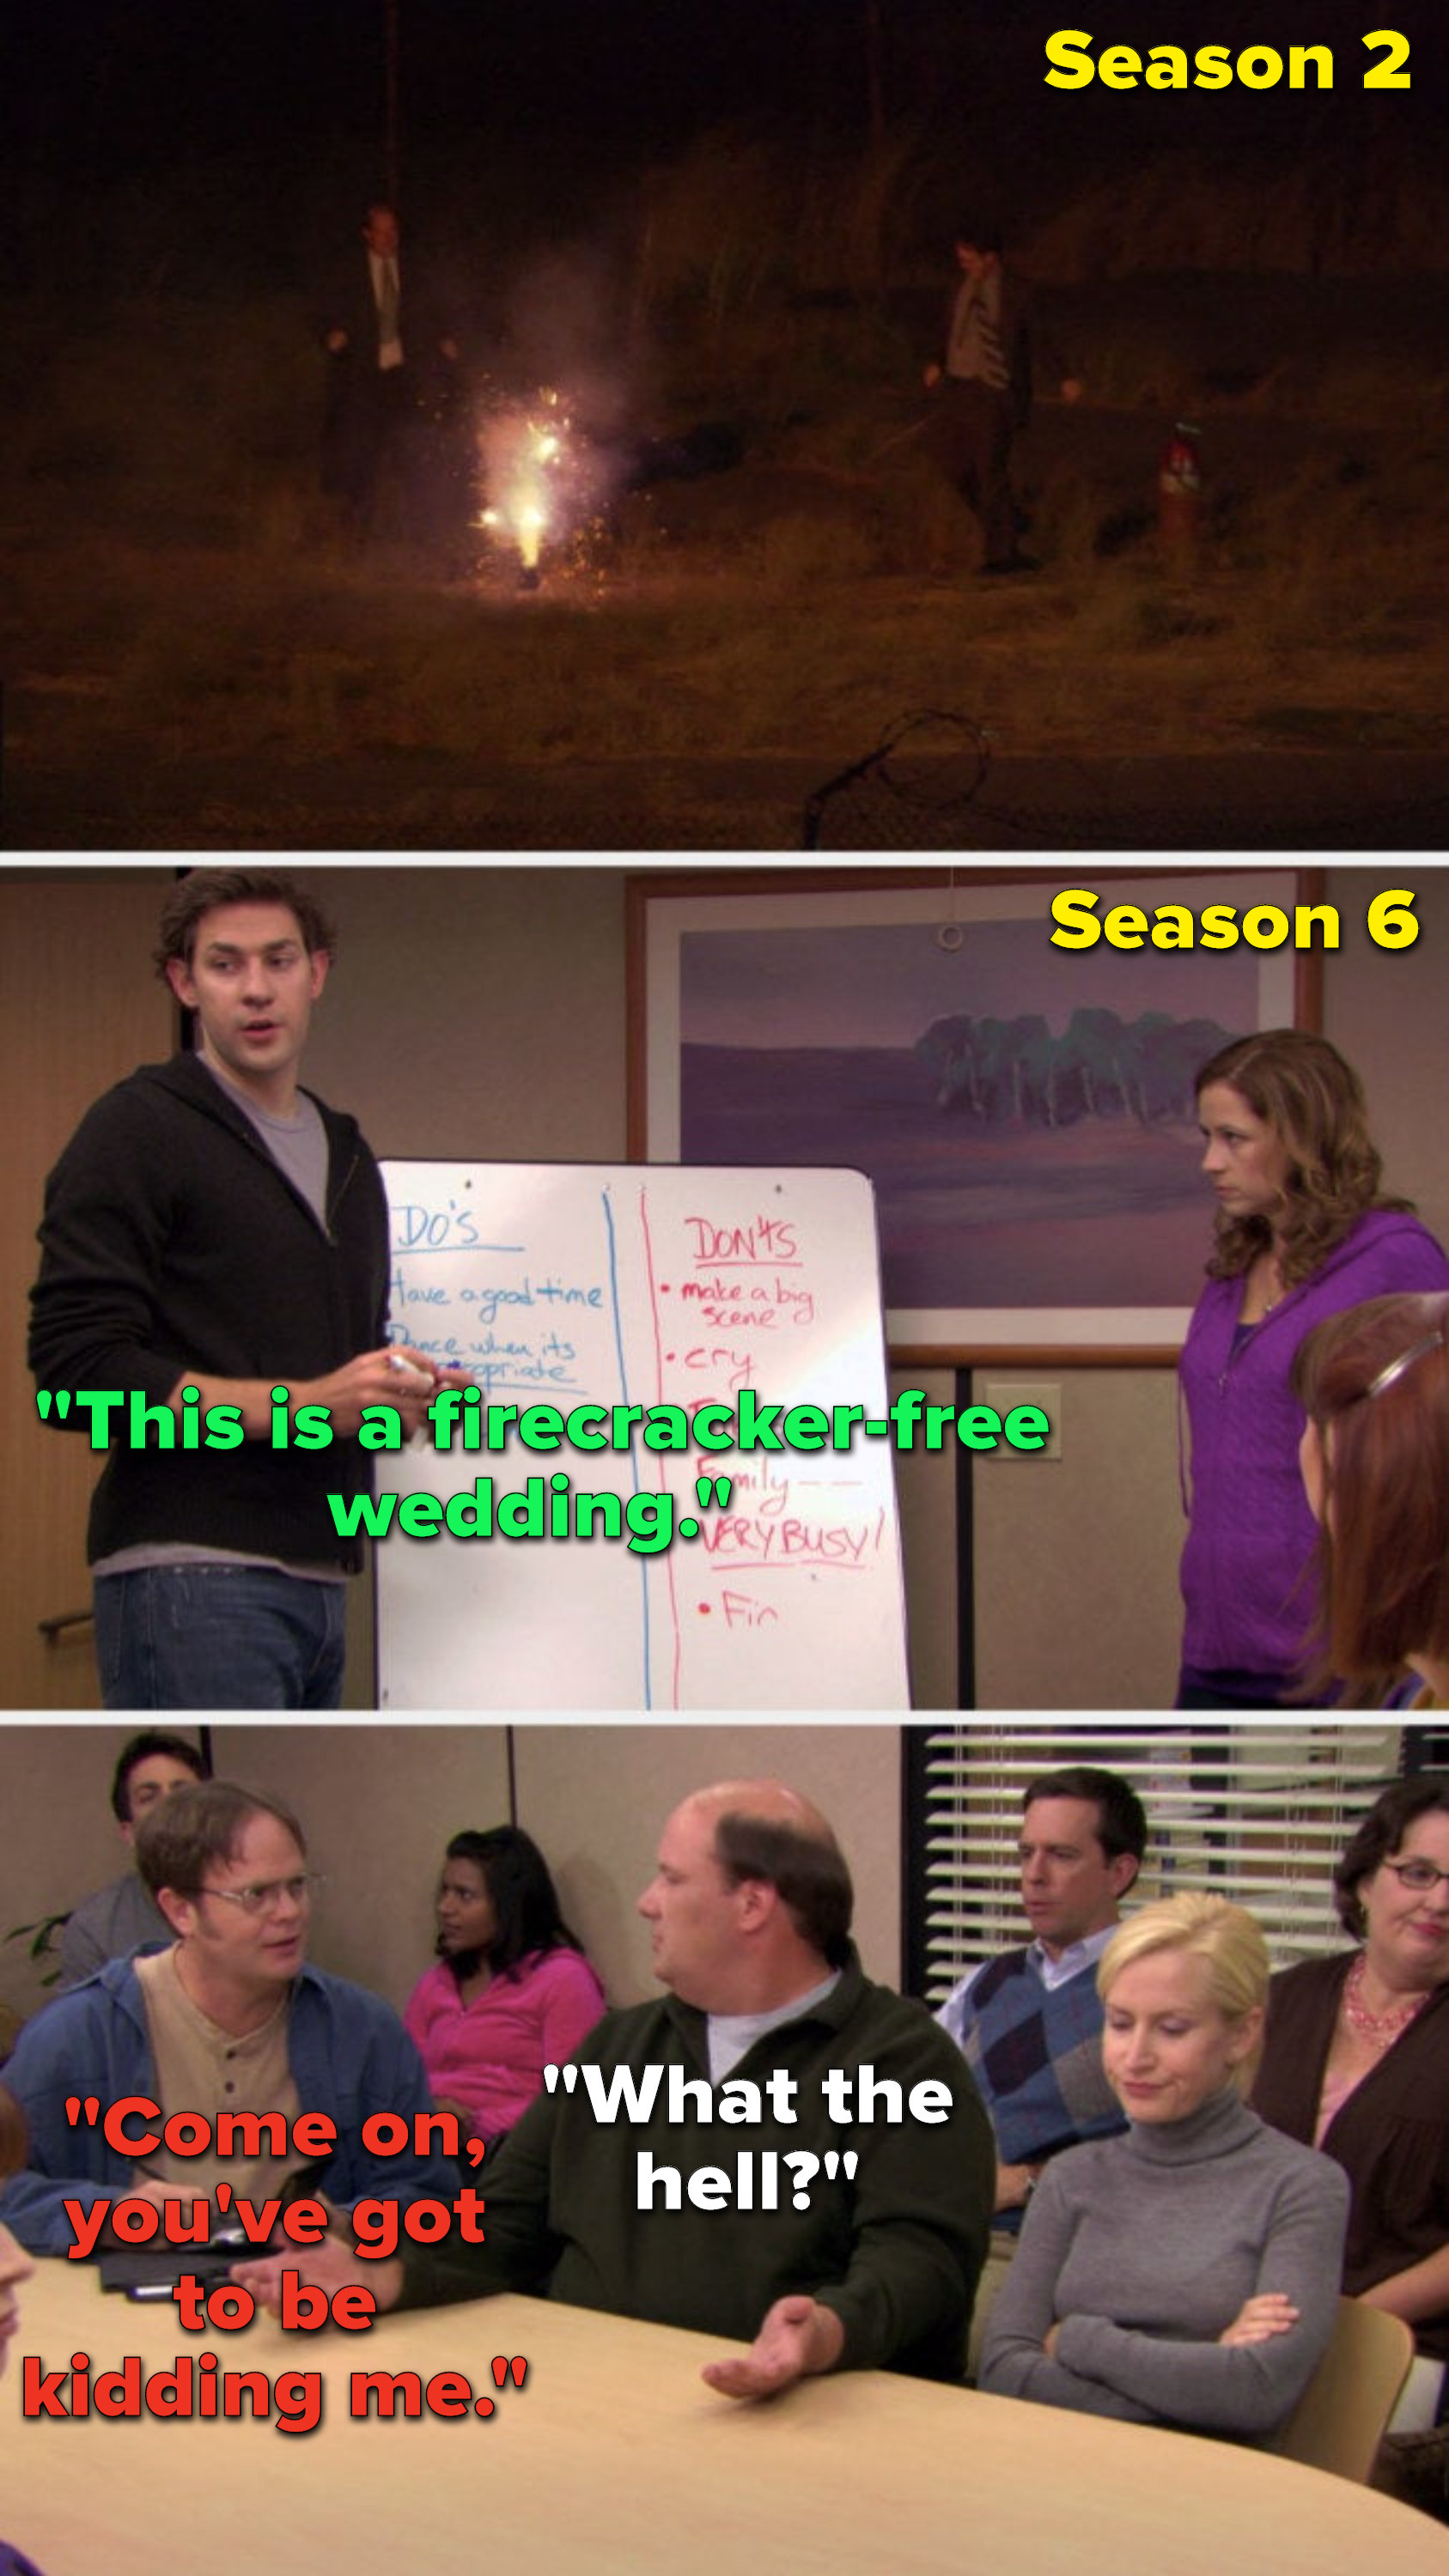 """Dwight and Kevin play with firecrackers, and then later Jim says, """"This is a firecracker-free wedding,"""" and Kevin says """"What the hell,"""" and Dwight says, """"Come on, you've got to be kidding me."""""""